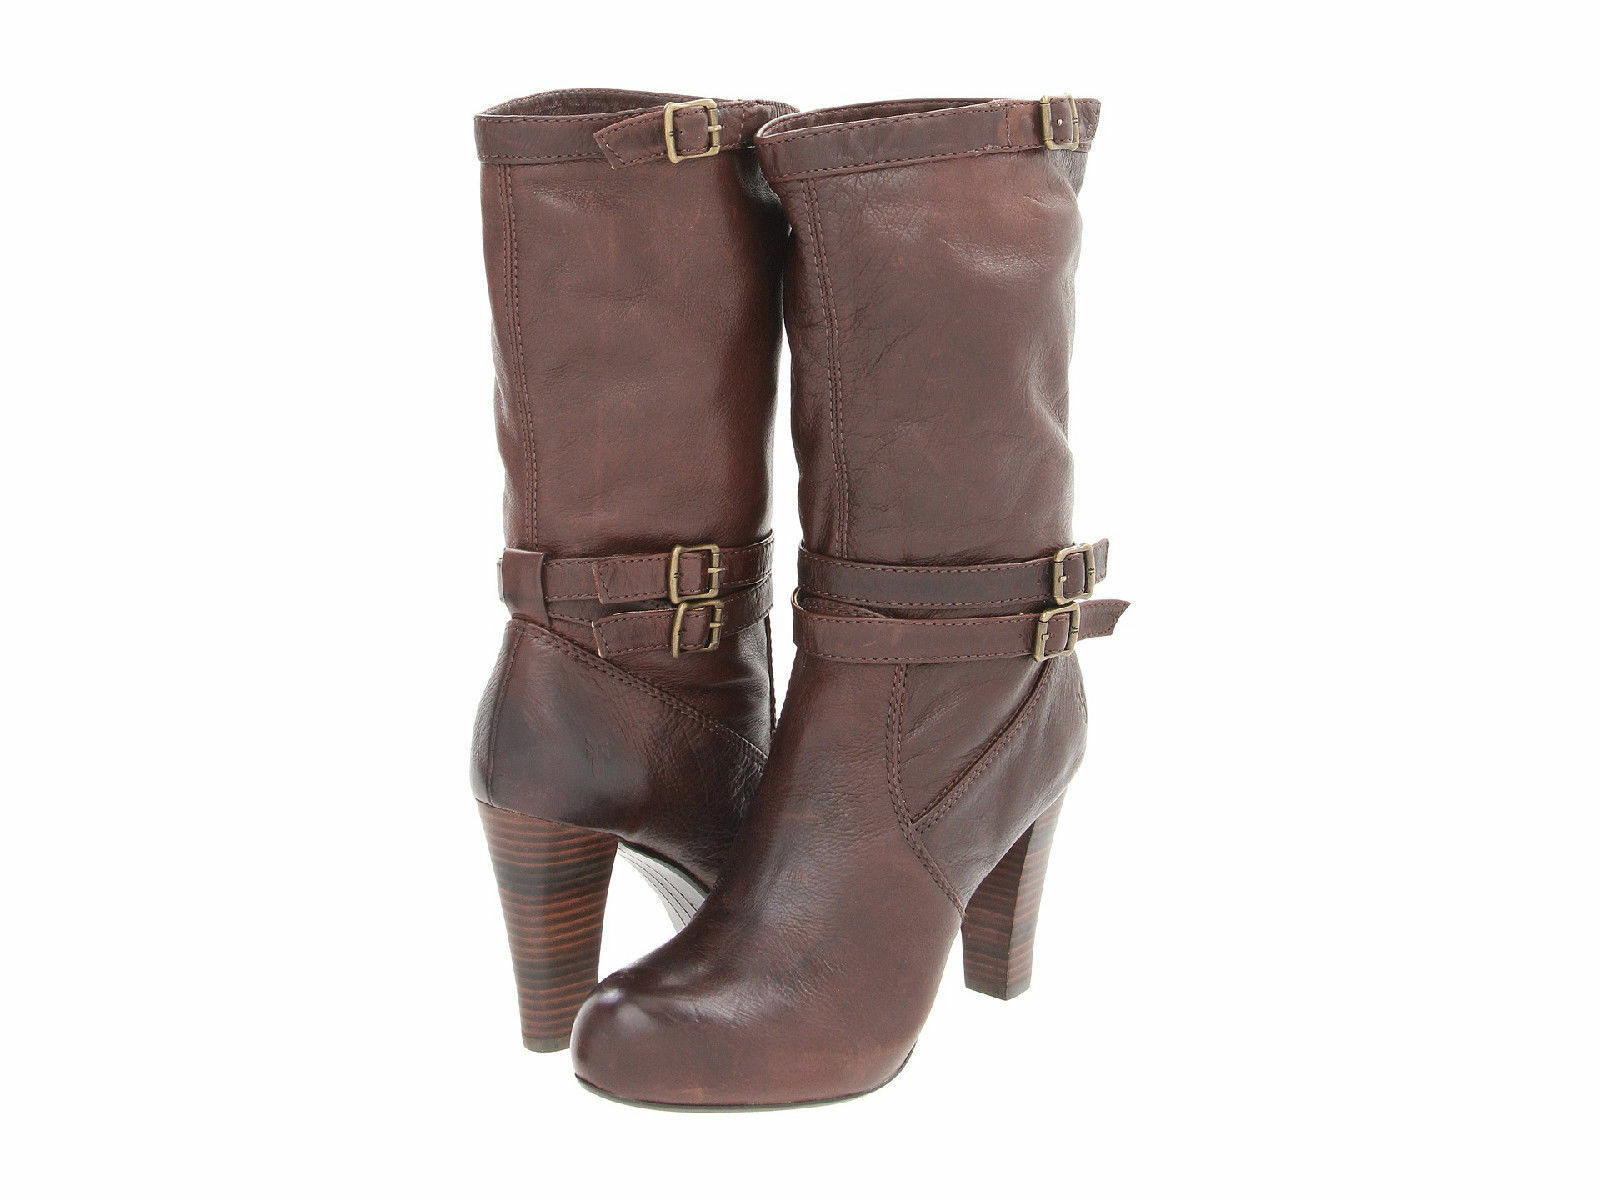 FRYE MIRANDA SLOUCH DARK BROWN VINTAGE LEATHER BOOTS SHOES 268.00 11